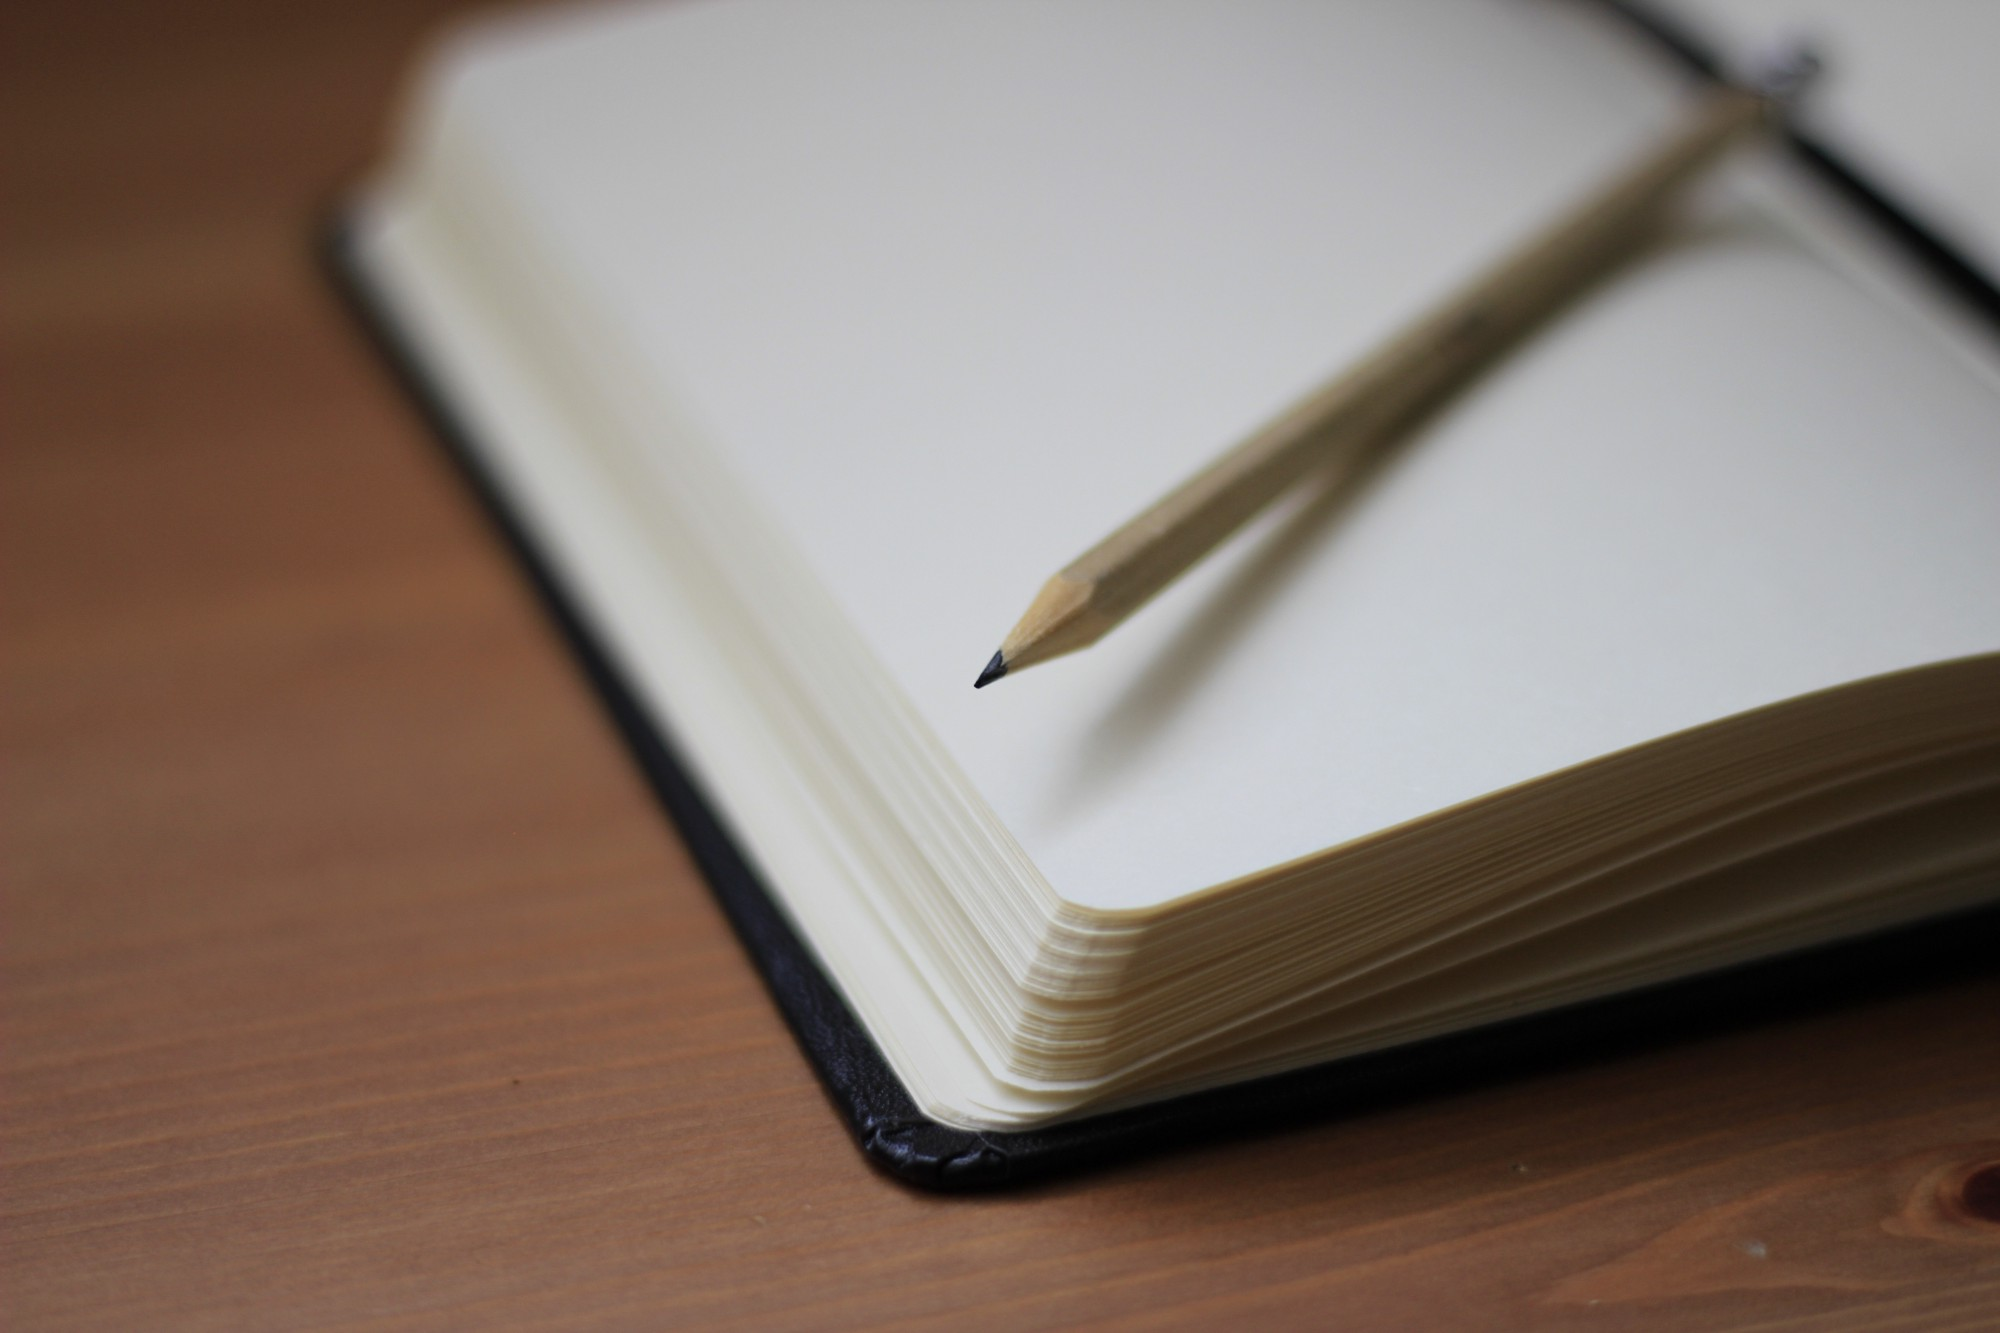 Getting Writer's Block? Here Are 21 Ways To Find Inspiration For Your Next Story